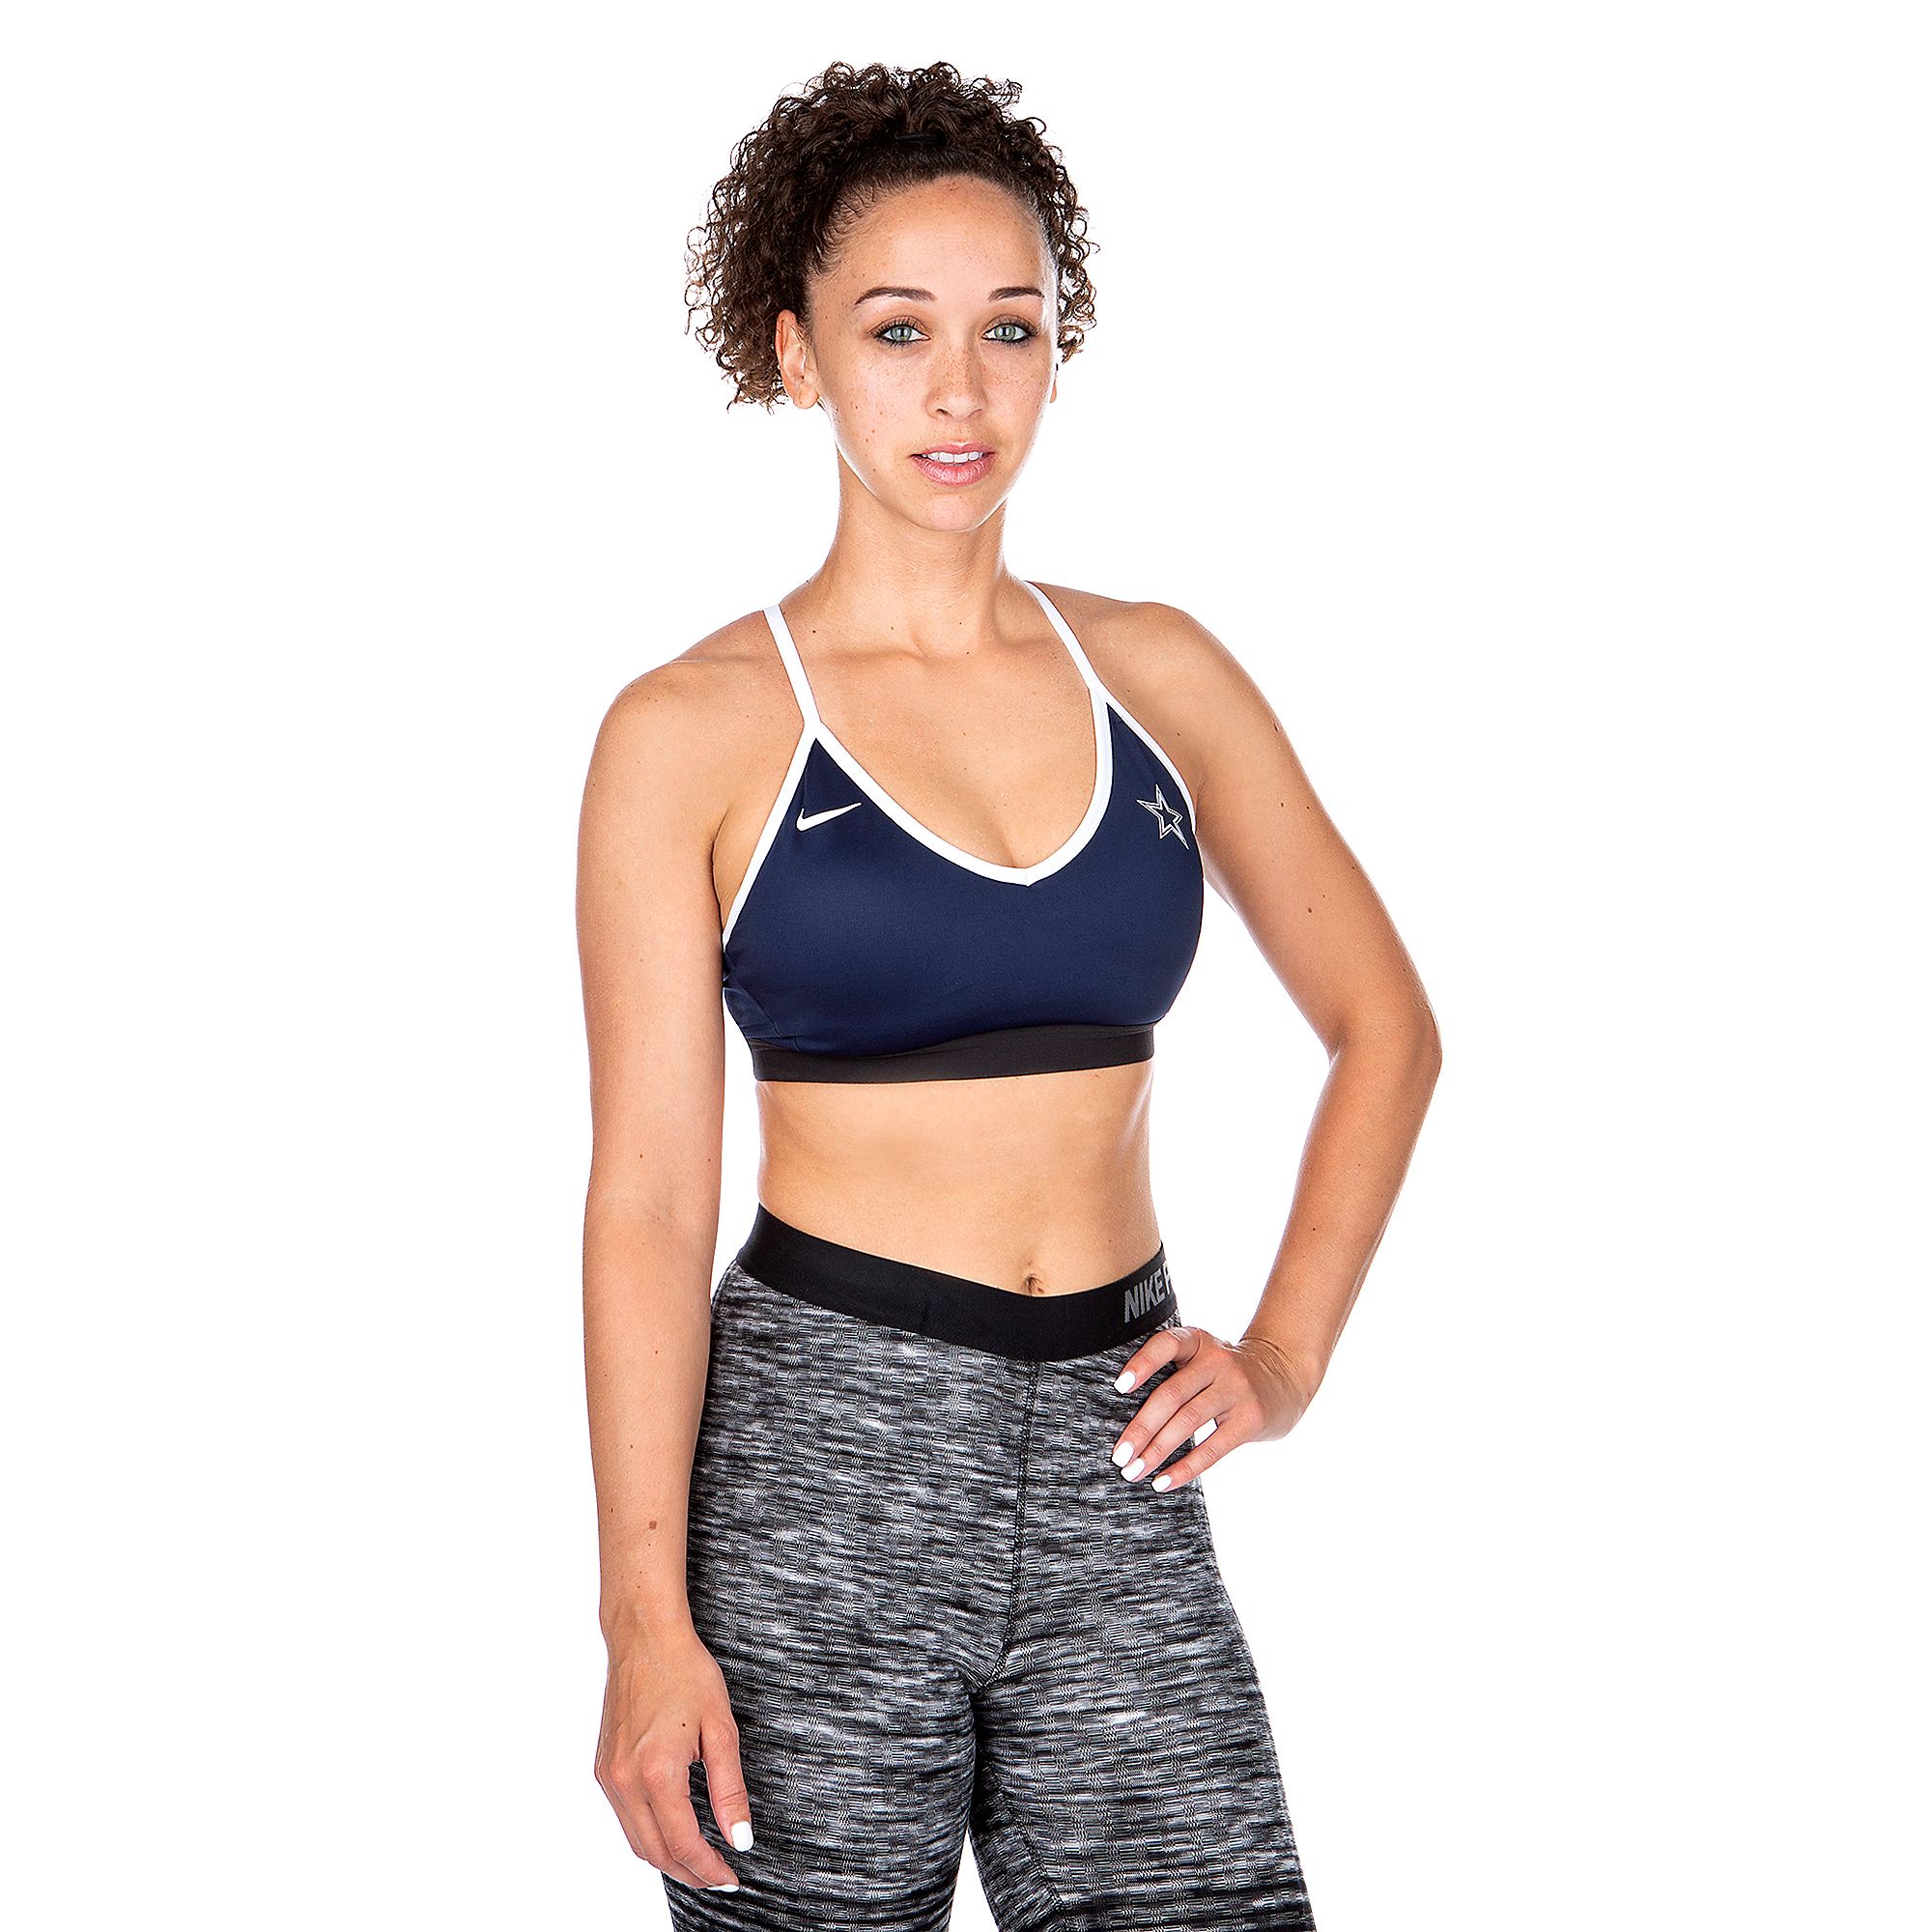 Dallas Cowboys Nike Womens Indy Sports Bra